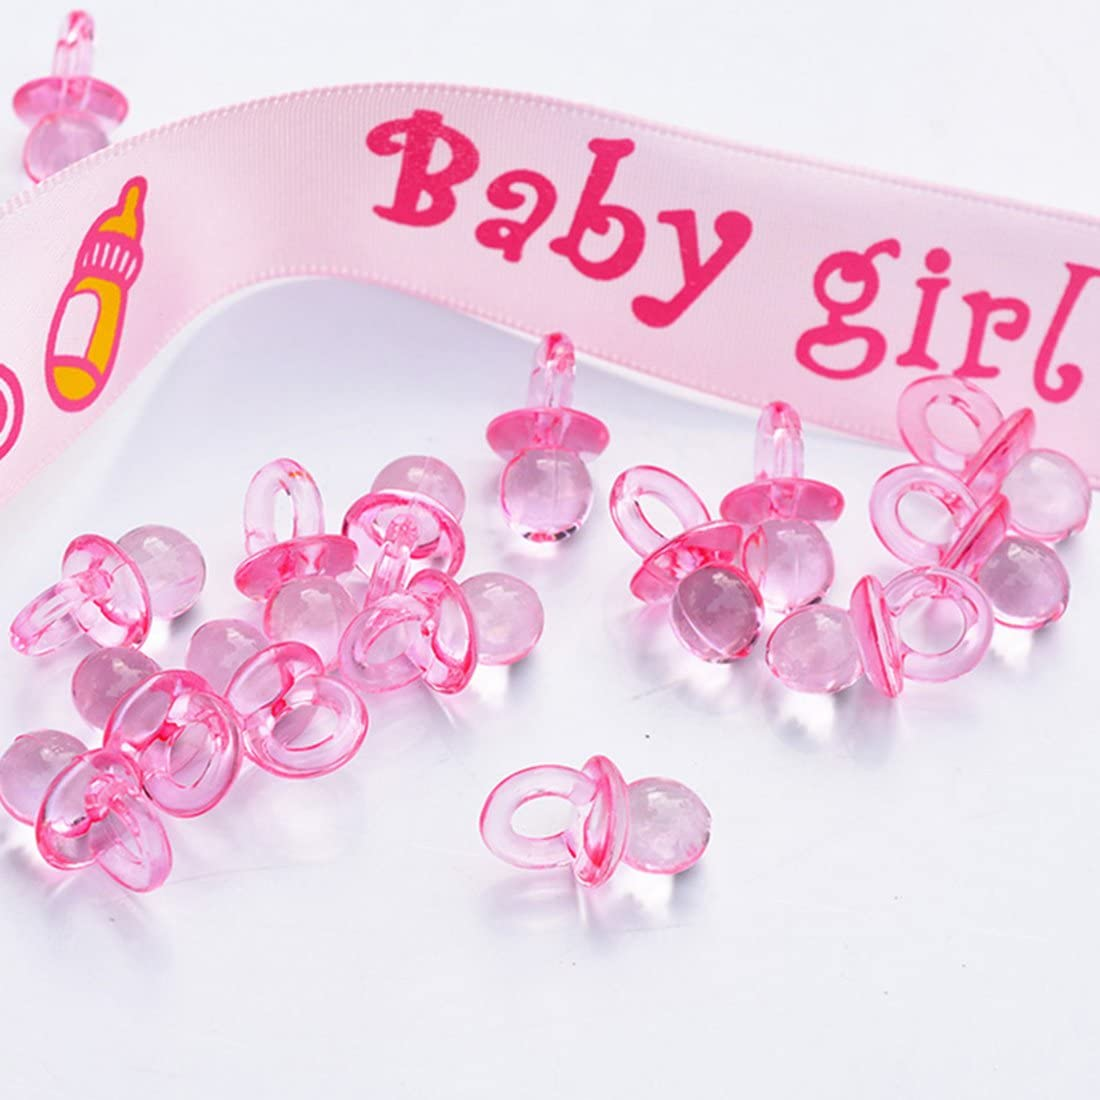 NiuZaiz 144 Pcs Mini Acrylic Pink Baby Pacifier Table Scatter Confetti for Baby Shower Birthday Party DIY Decorations (Pink)